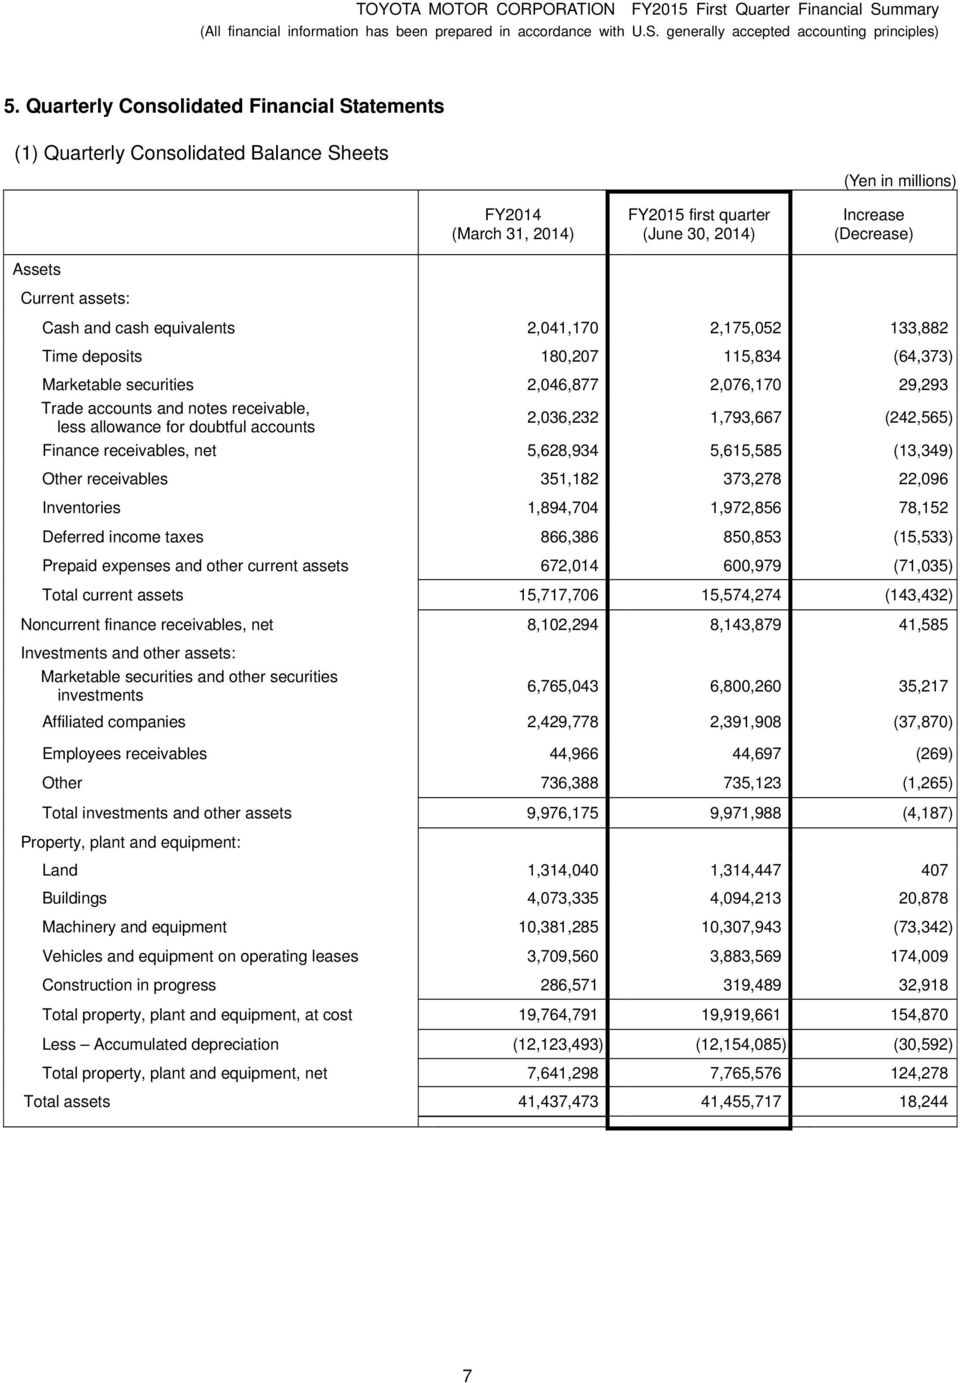 doubtful accounts 2,036,232 1,793,667 (242,565) Finance receivables, net 5,628,934 5,615,585 (13,349) Other receivables 351,182 373,278 22,096 Inventories 1,894,704 1,972,856 78,152 Deferred income